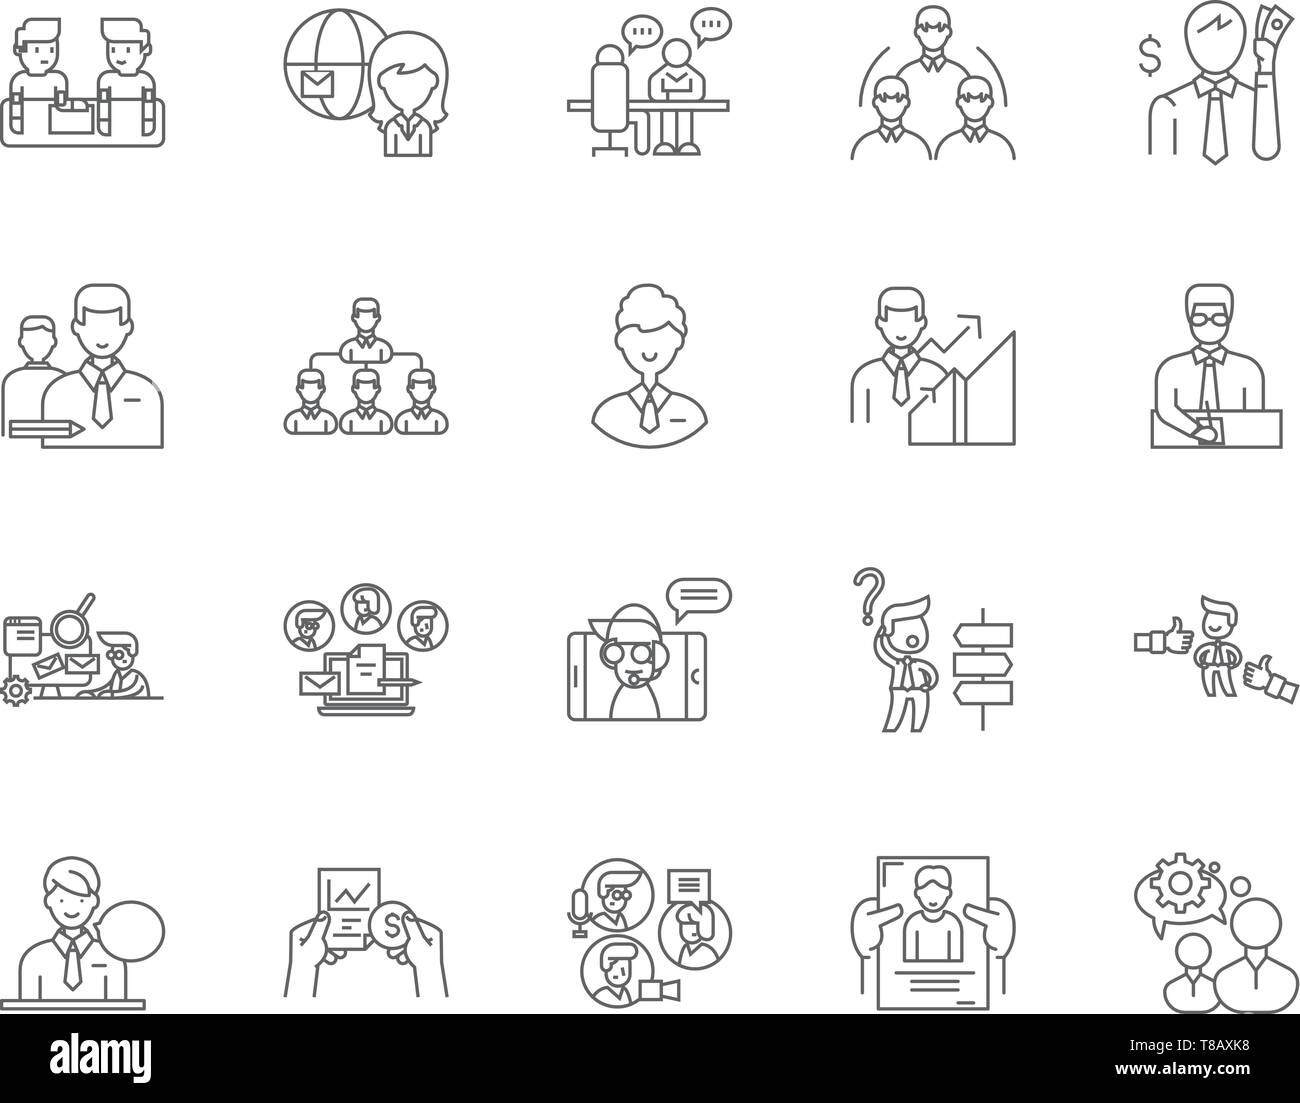 Import agents line icons, signs, vector set, outline illustration concept  - Stock Vector